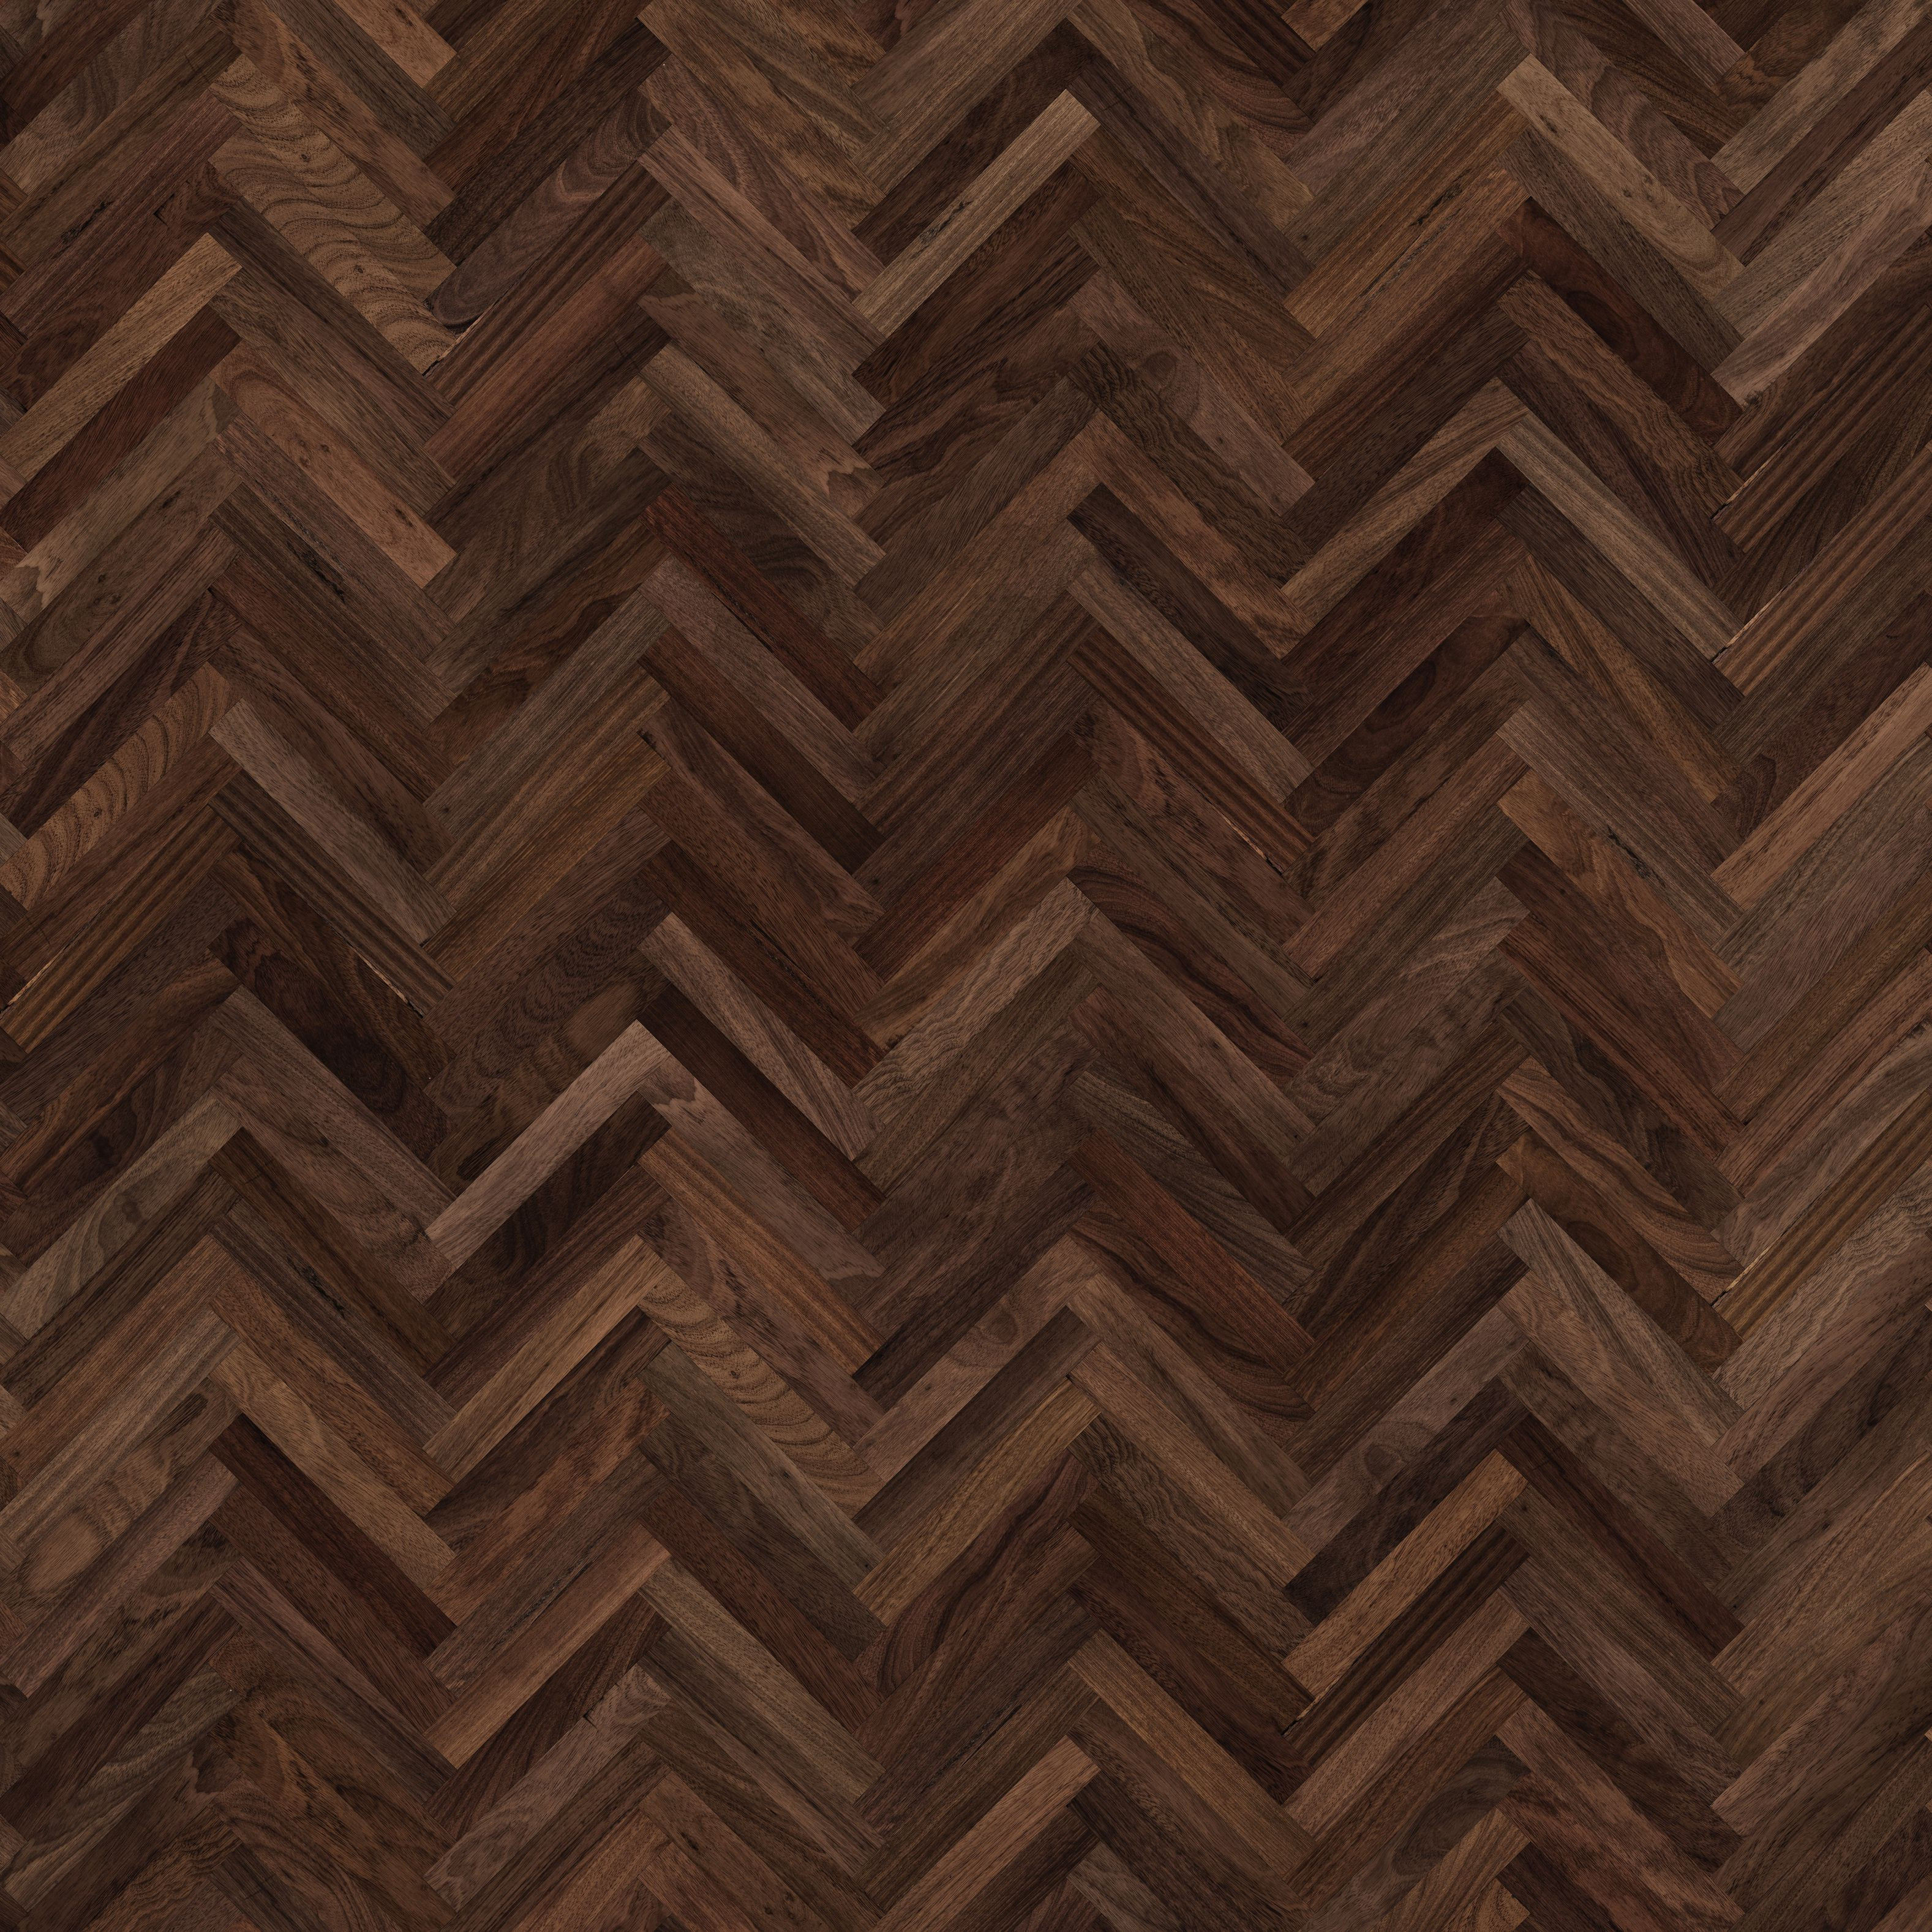 how to lay hardwood floor pattern of parquet wood flooring inside dark brown wood background xxxl 171110782 587c06b75f9b584db316fb21